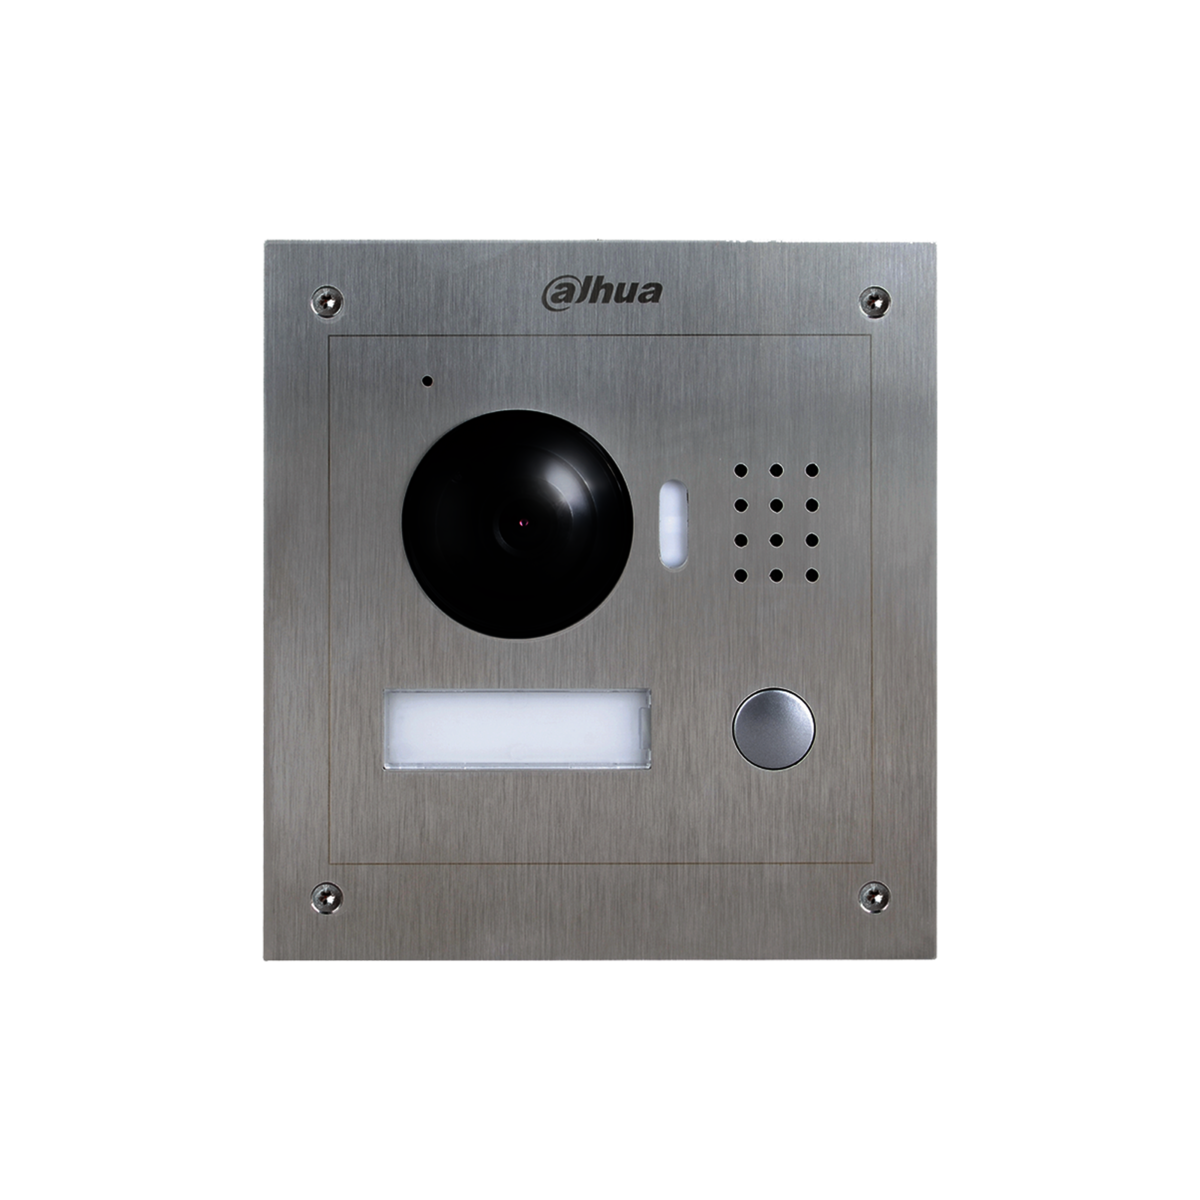 Dahua VTH5221D 2 Wire Villa Intercom